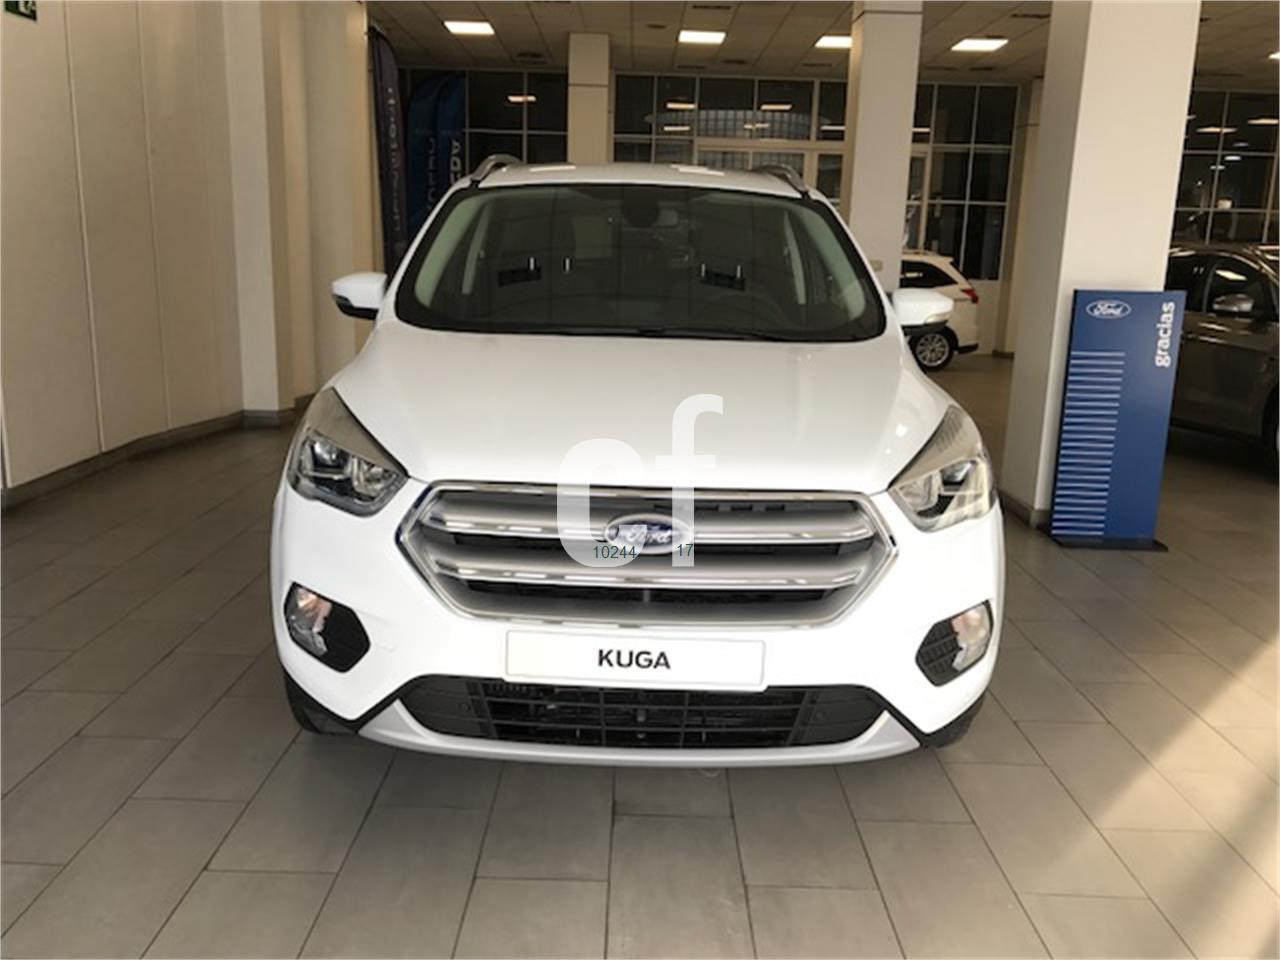 Used Ford Kuga cars Valencia Spain from 19,000 EUR to 20,000 EUR